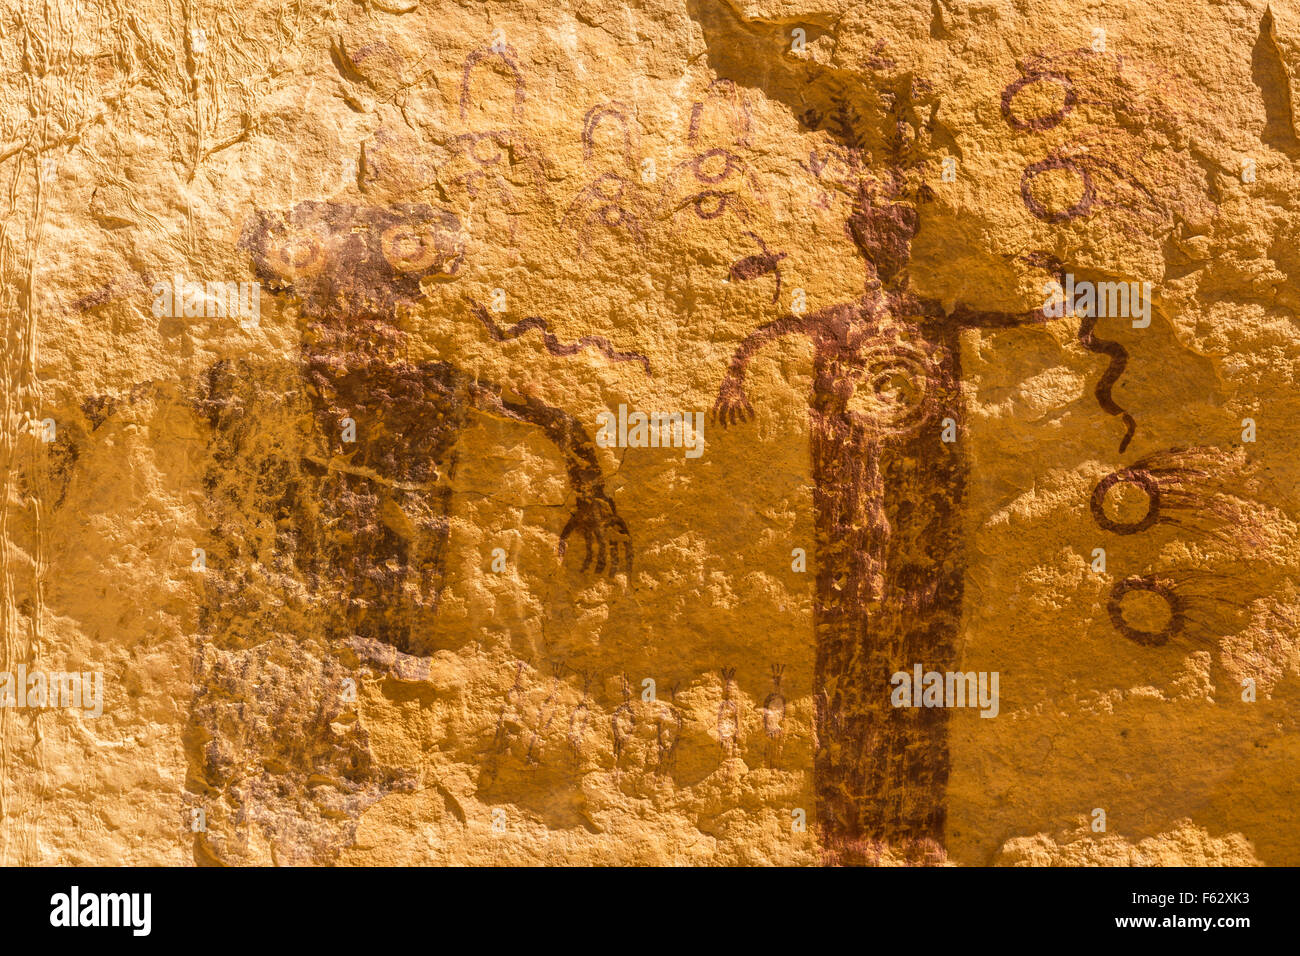 A 3000 year old rock art pictograph, found near the Head of Sinbad panel in the San Rafael Swell in Southern Utah. - Stock Image